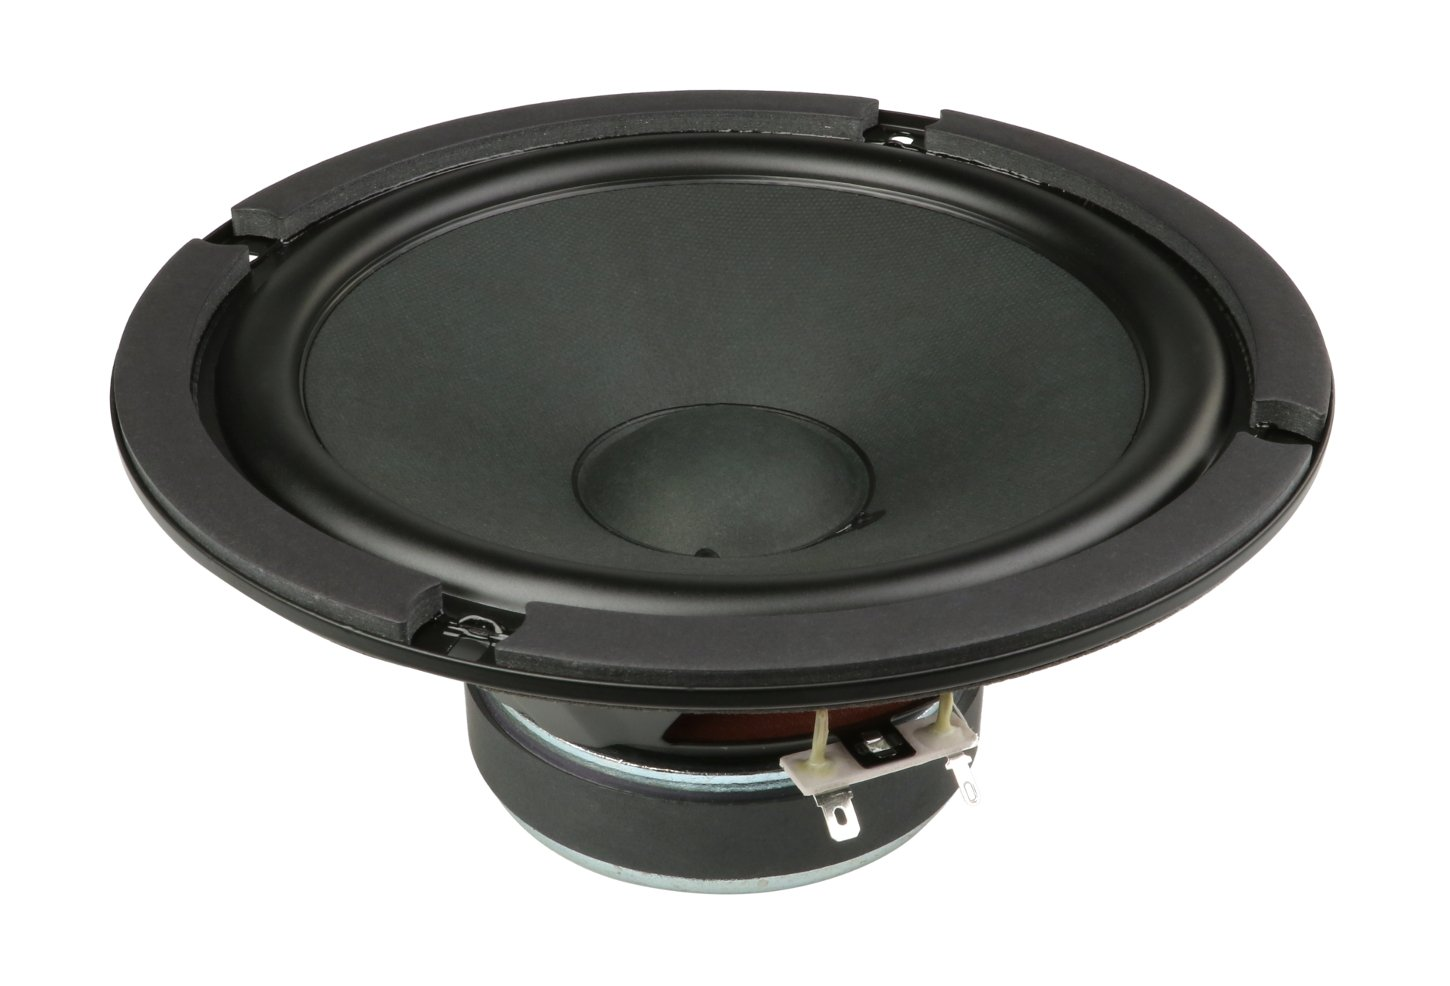 yamaha aax6165r lf woofer for stagepas 300 full compass. Black Bedroom Furniture Sets. Home Design Ideas